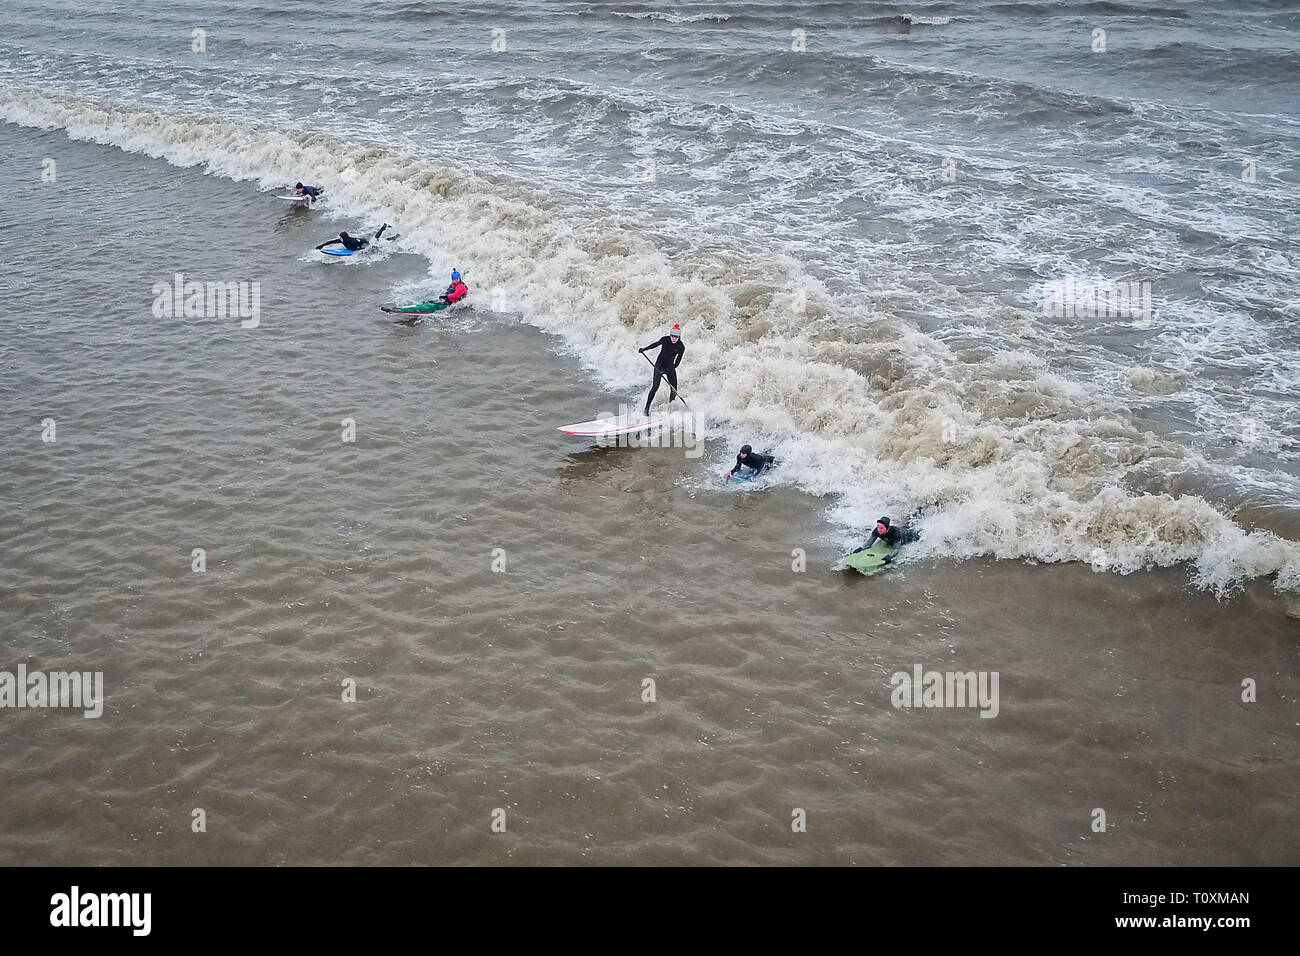 Surfing The Severn Bore Stock Photos Surfing The Severn